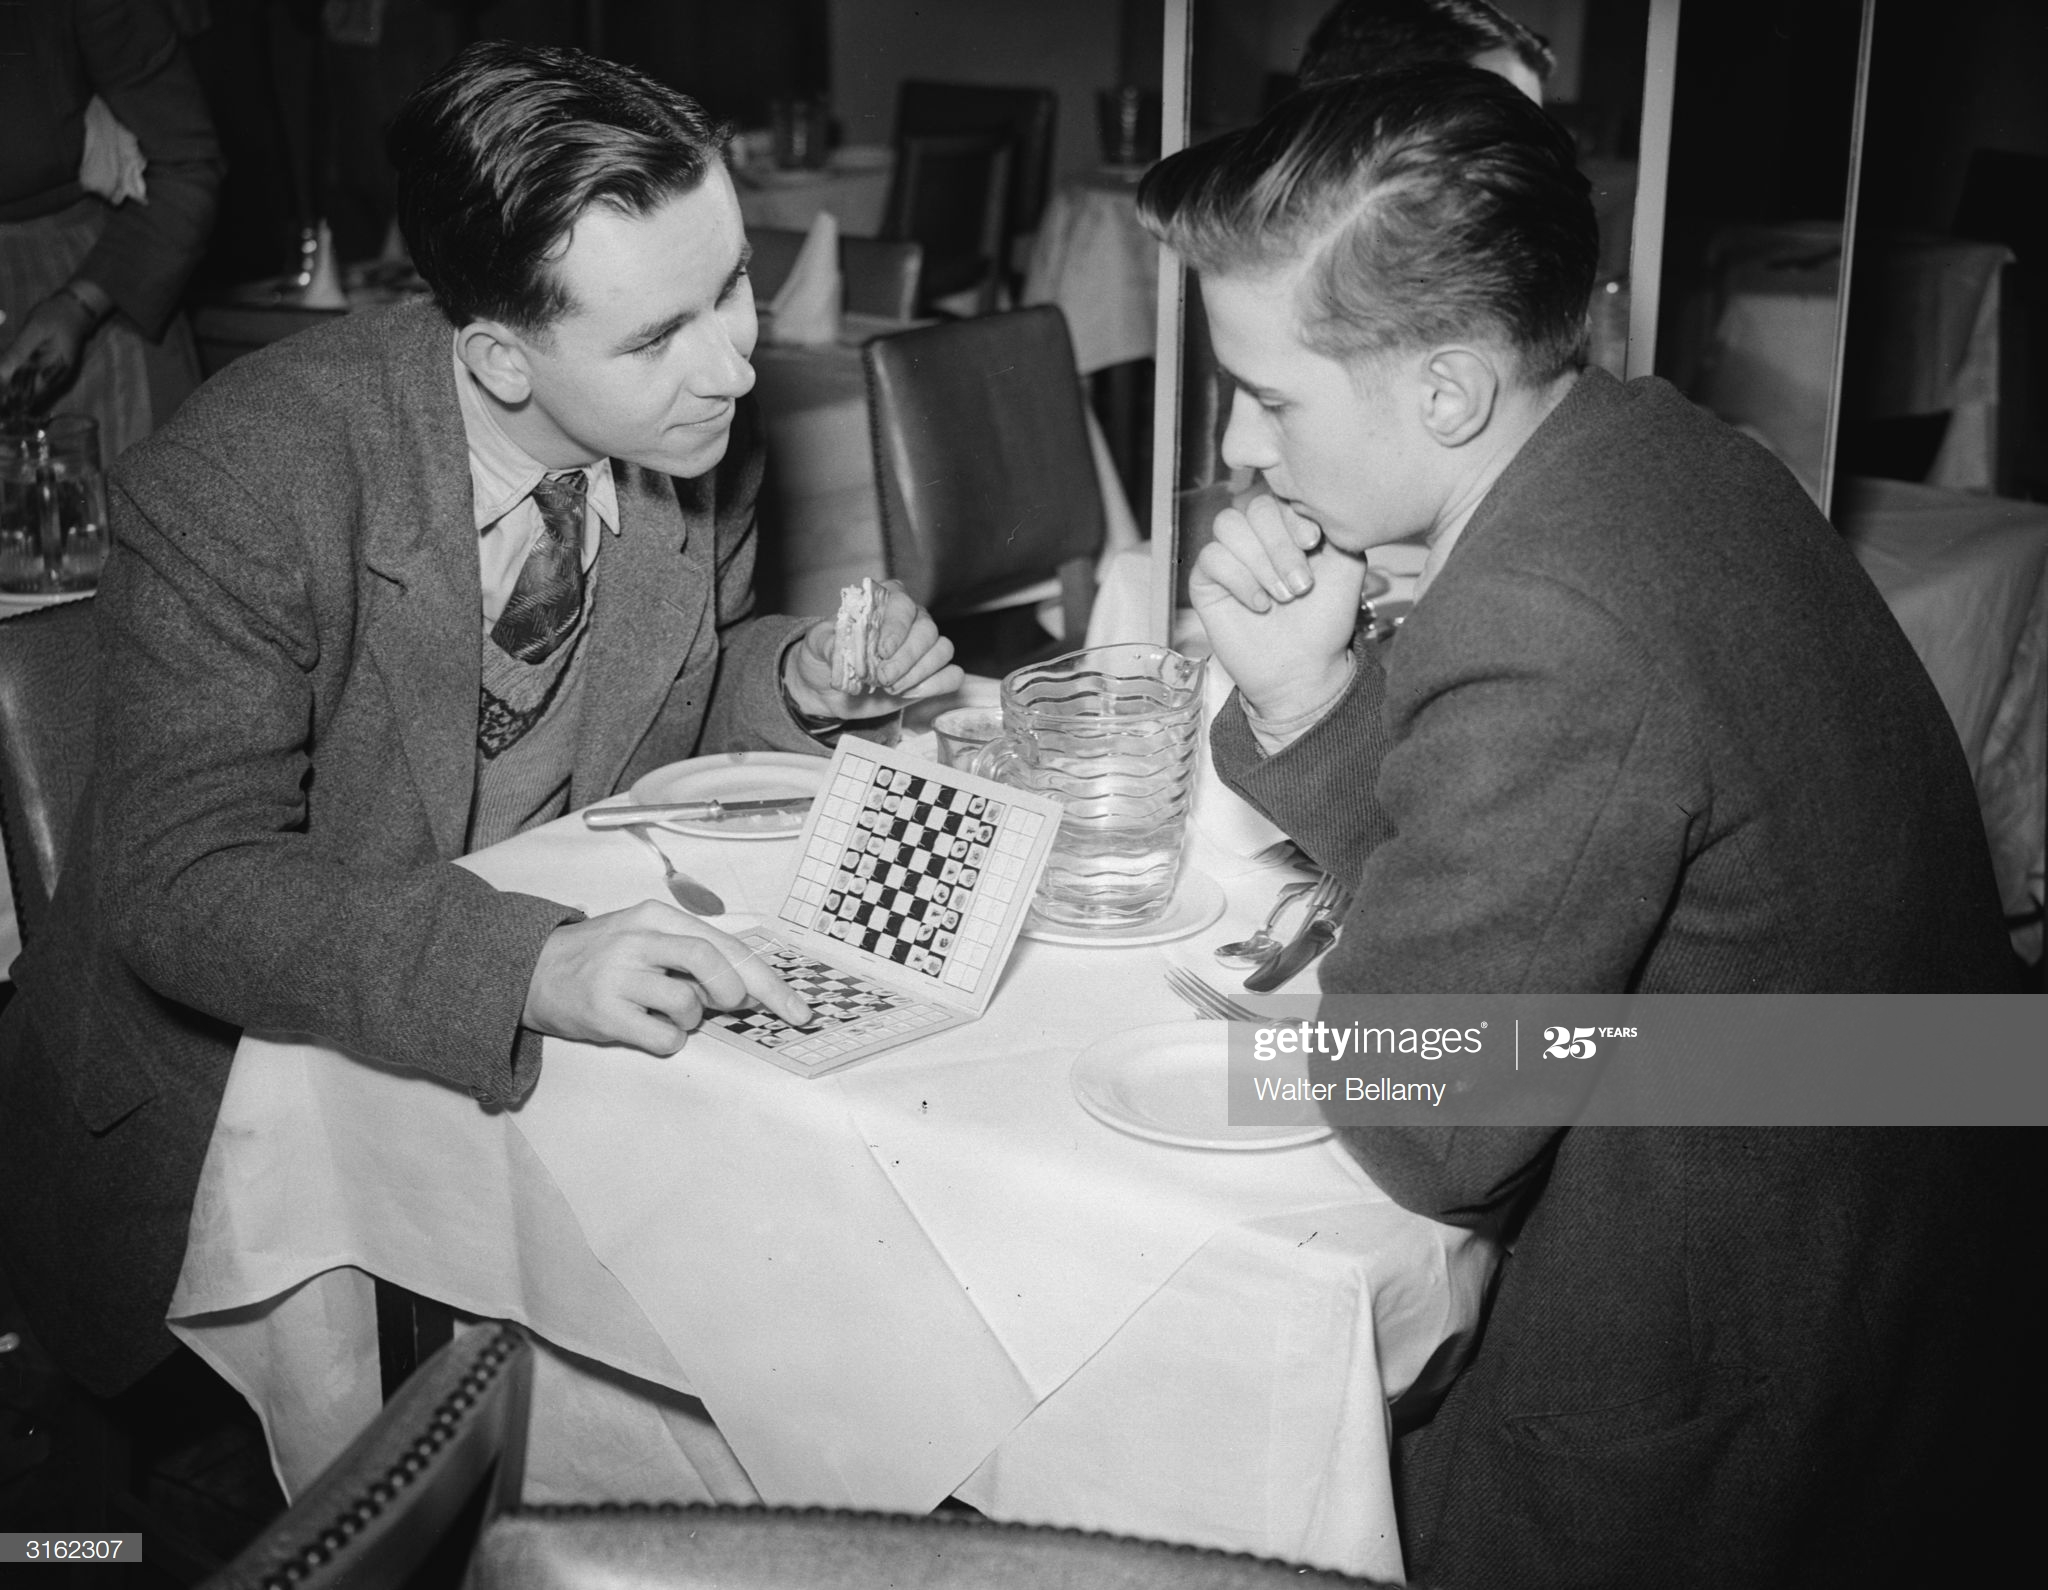 Travel Chess 2nd January 1951: British chess champions Jonathan Penrose and Leonard Barden ponder over a portable travel game in a restaurant. (Photo by Walter Bellamy/Express/Getty Images)